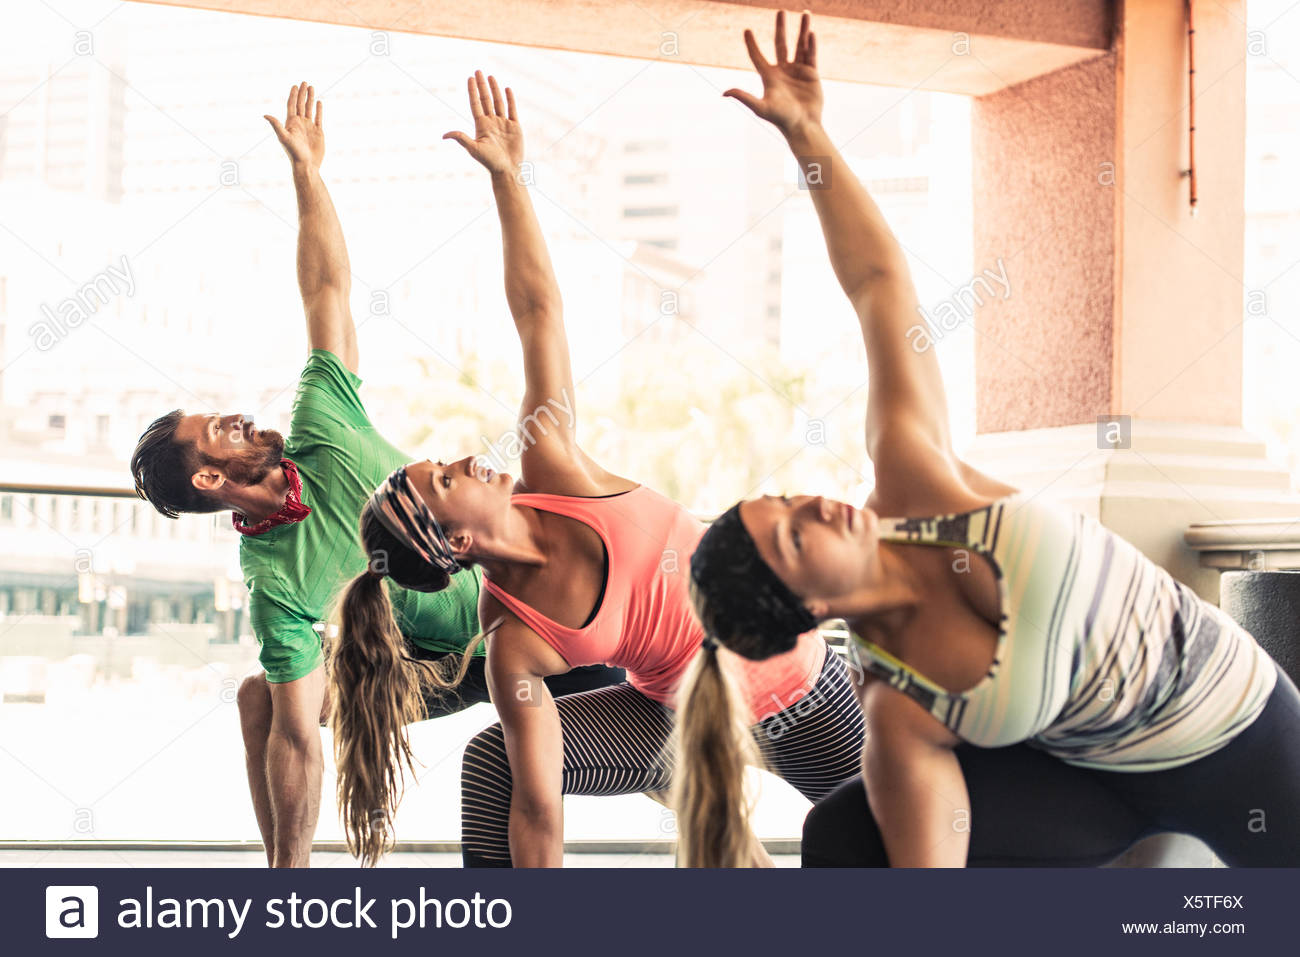 Group of young adults doing yoga - Stock Image